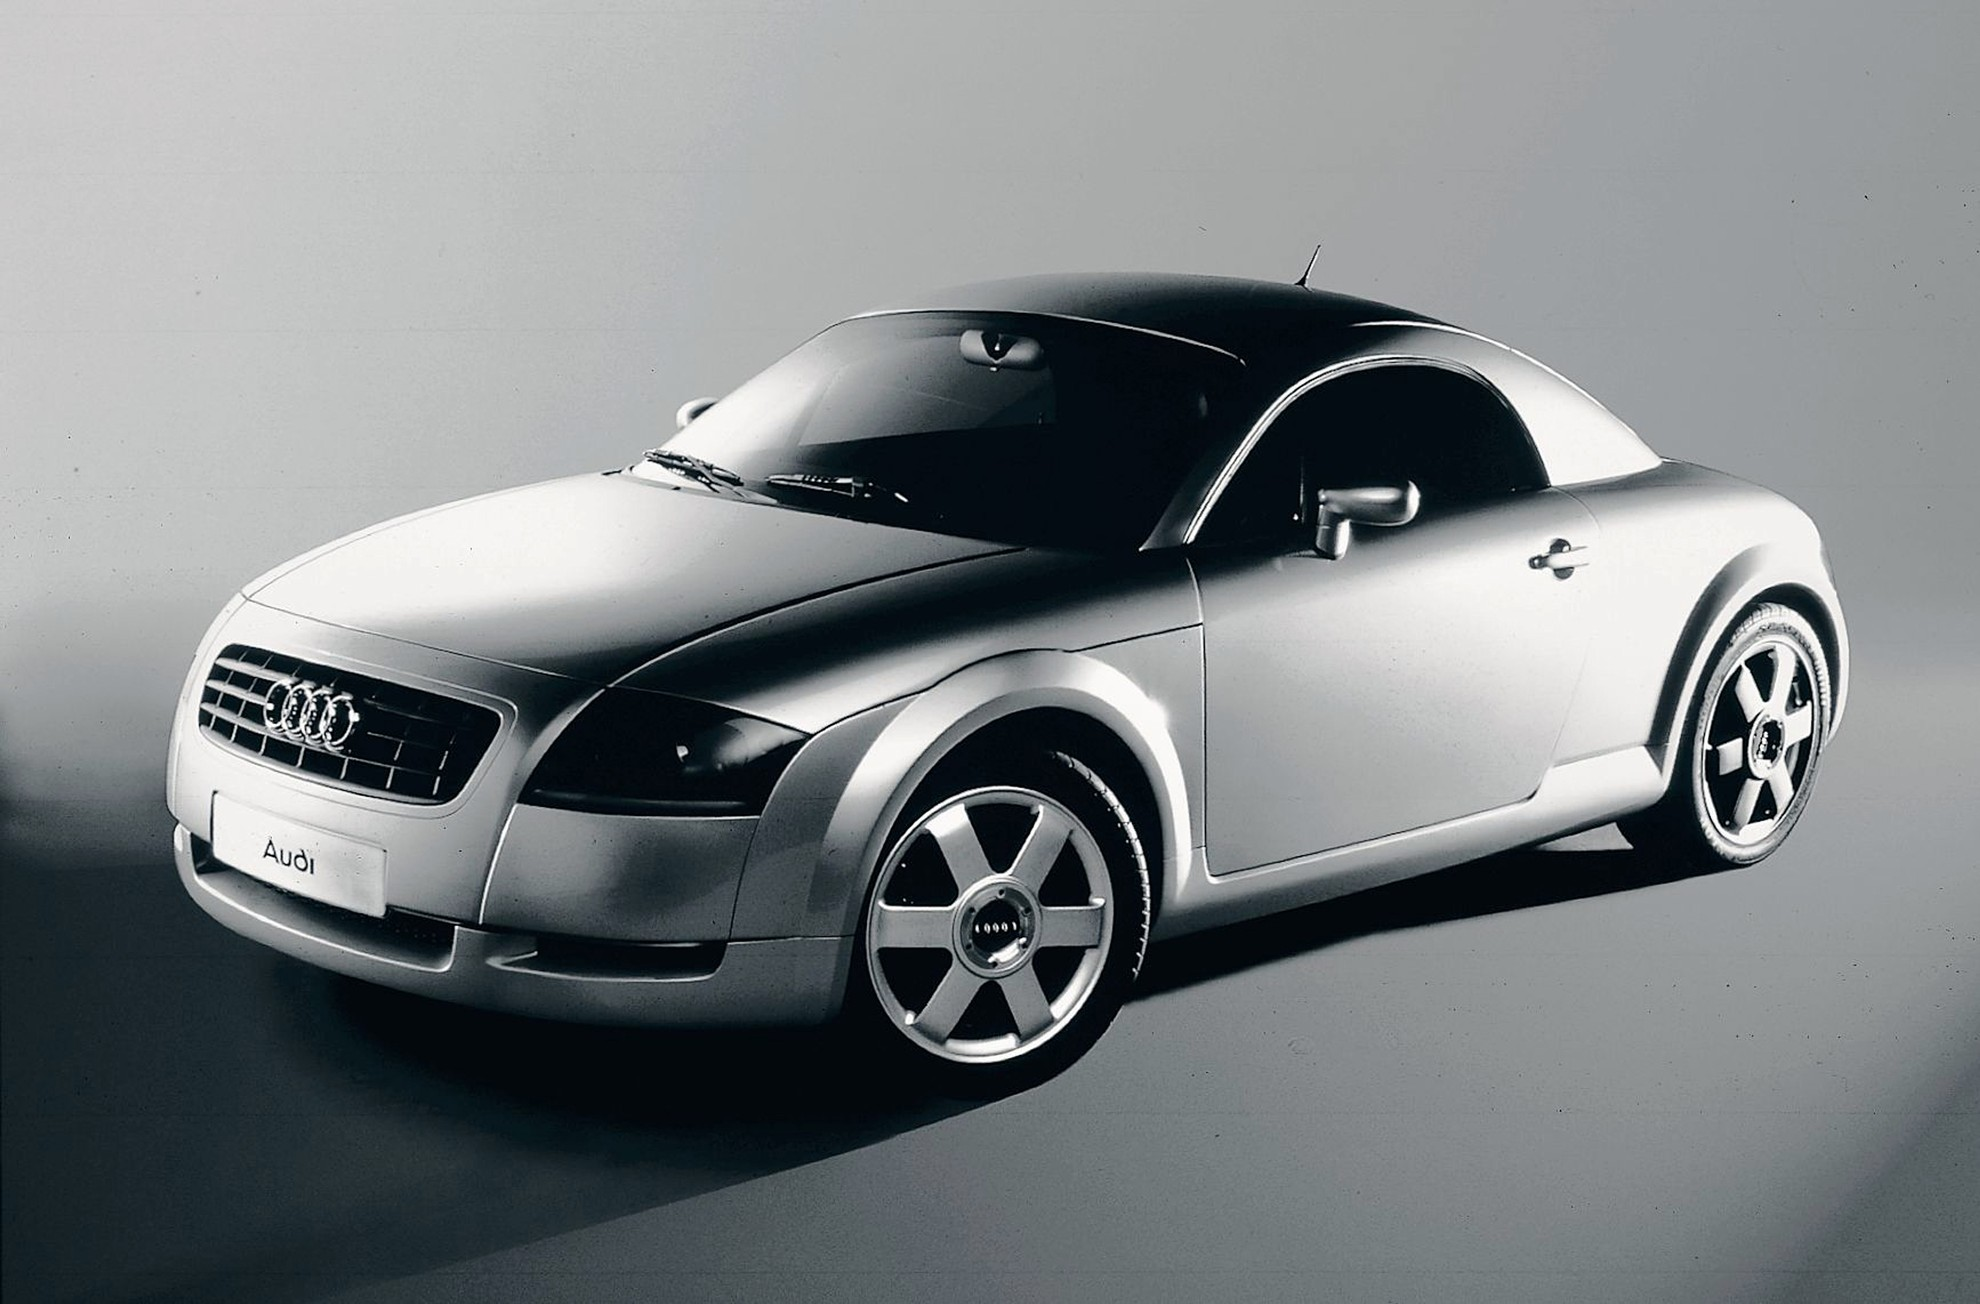 Audi Museum Mobile History And Stories About The Audi Tt